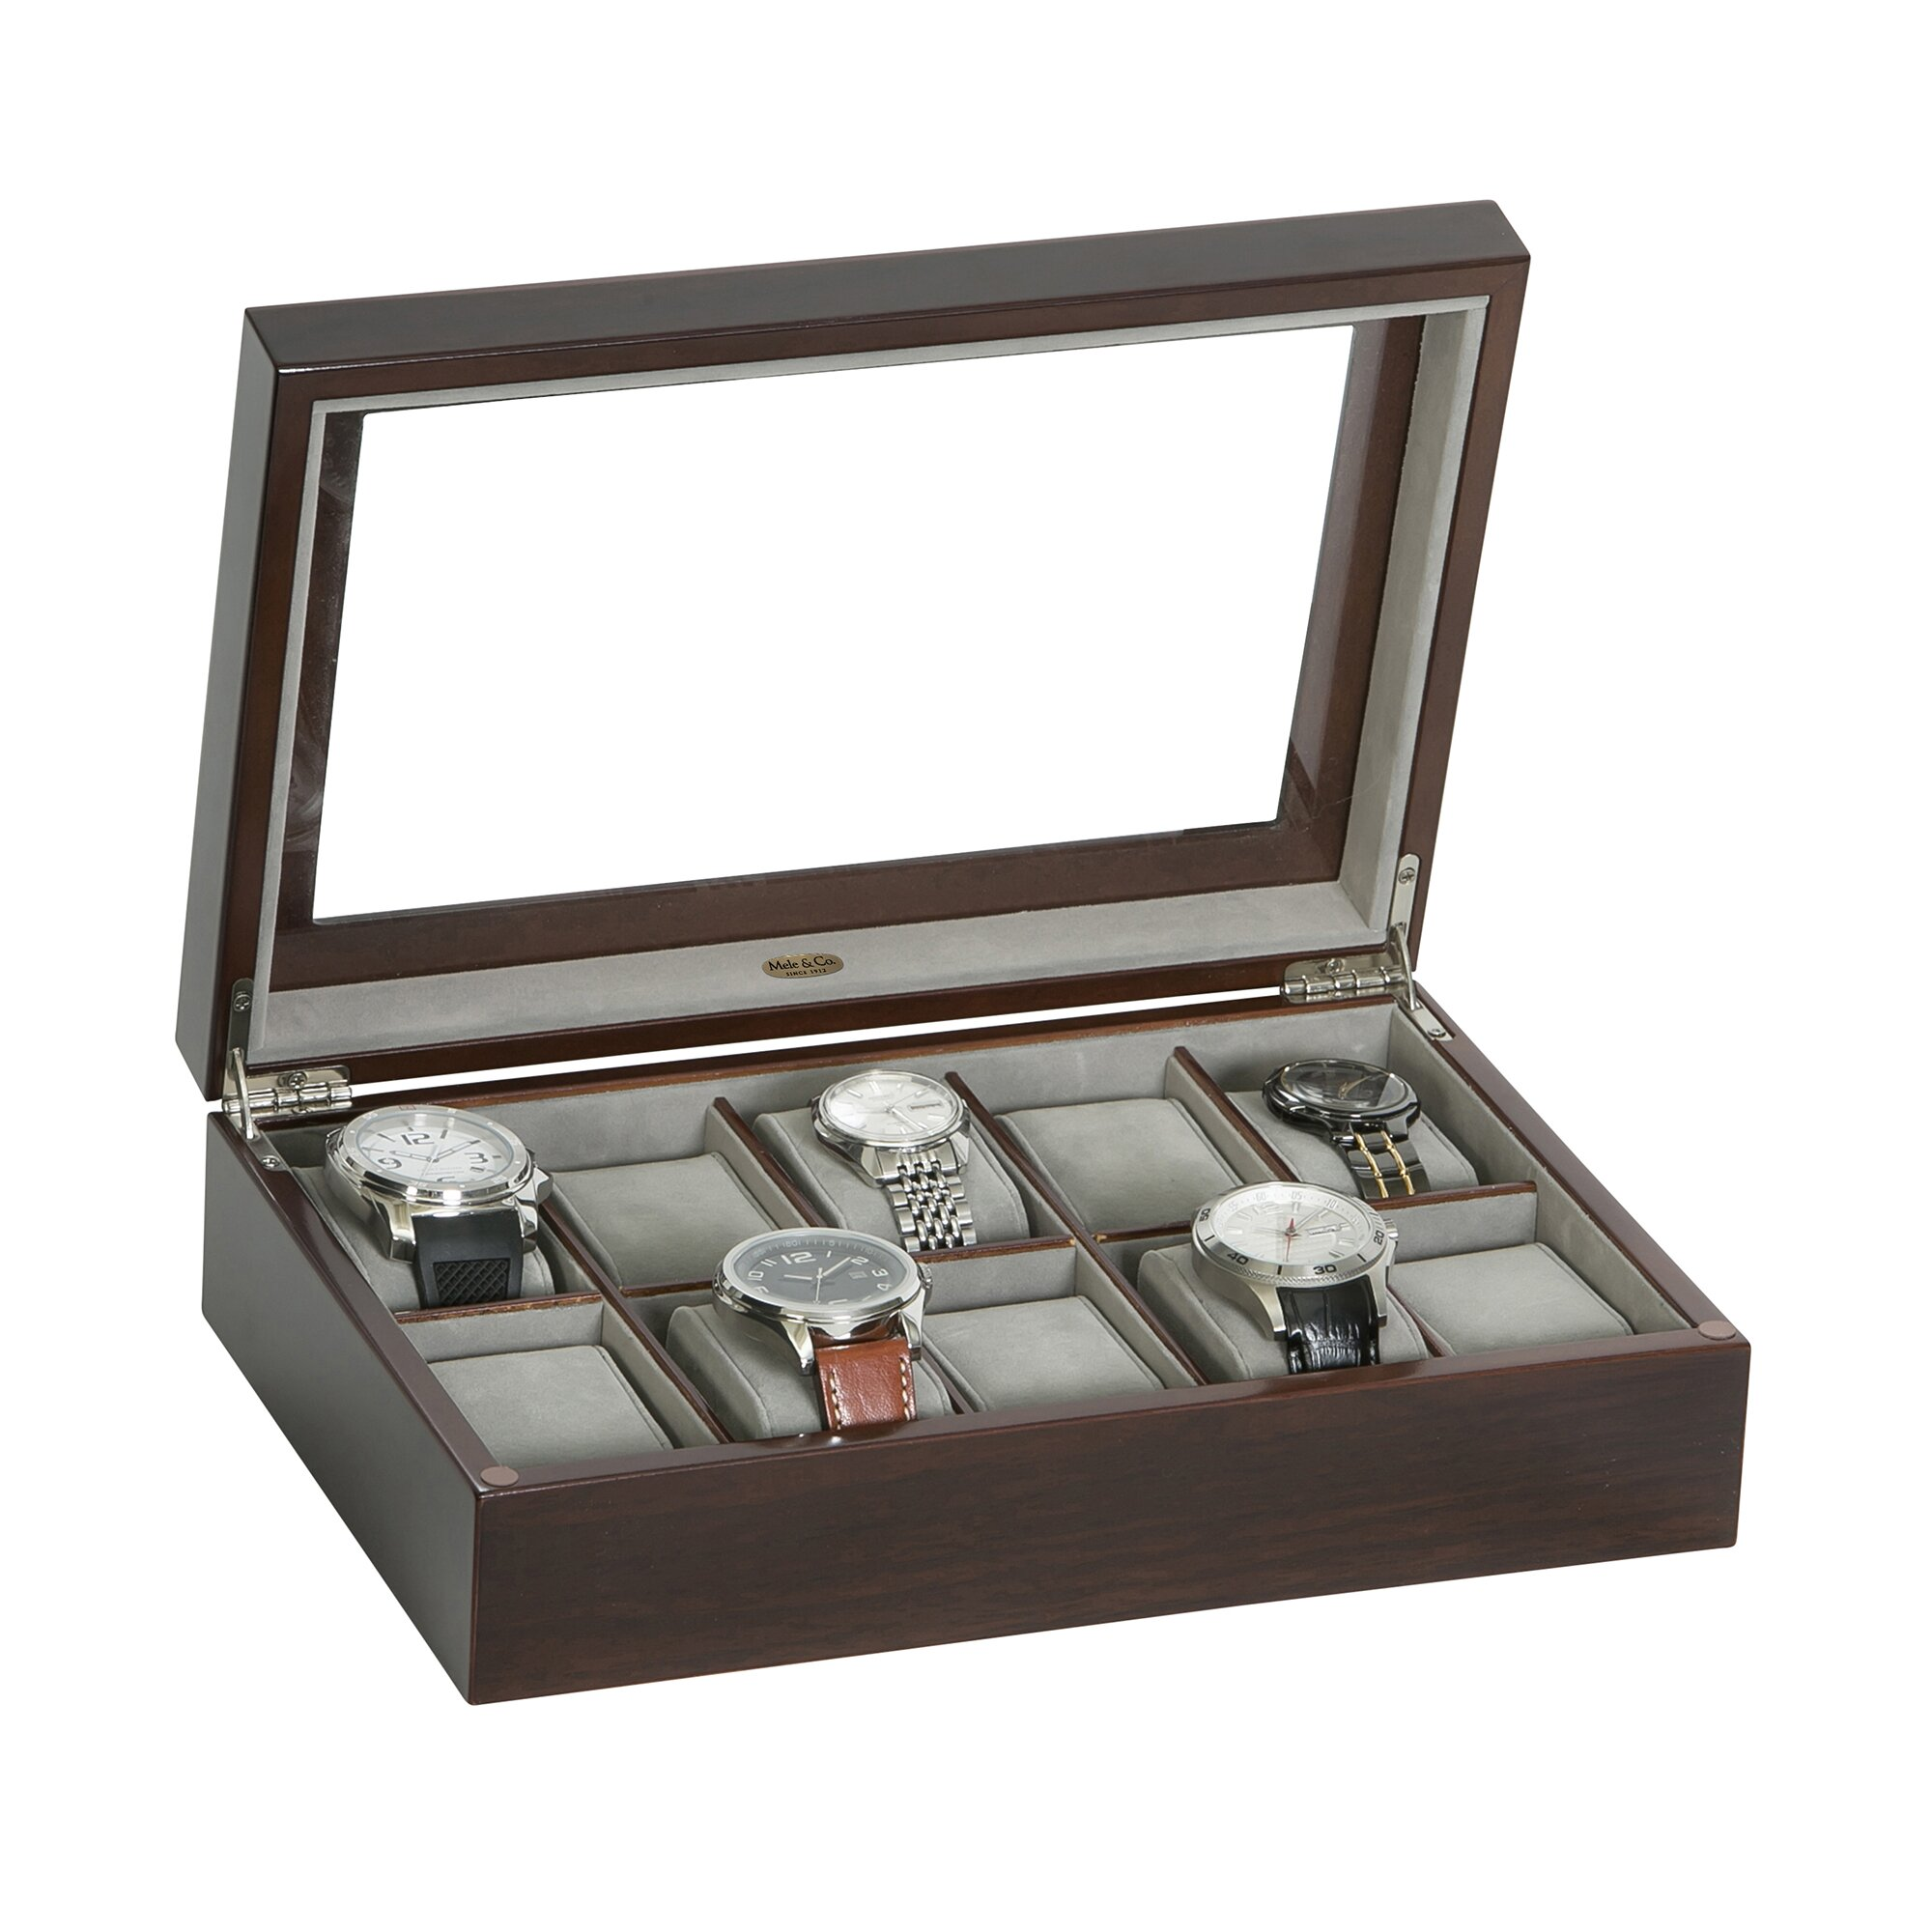 Mele Amp Co Hudson Glass Top Wooden Watch Box Wayfair Ca